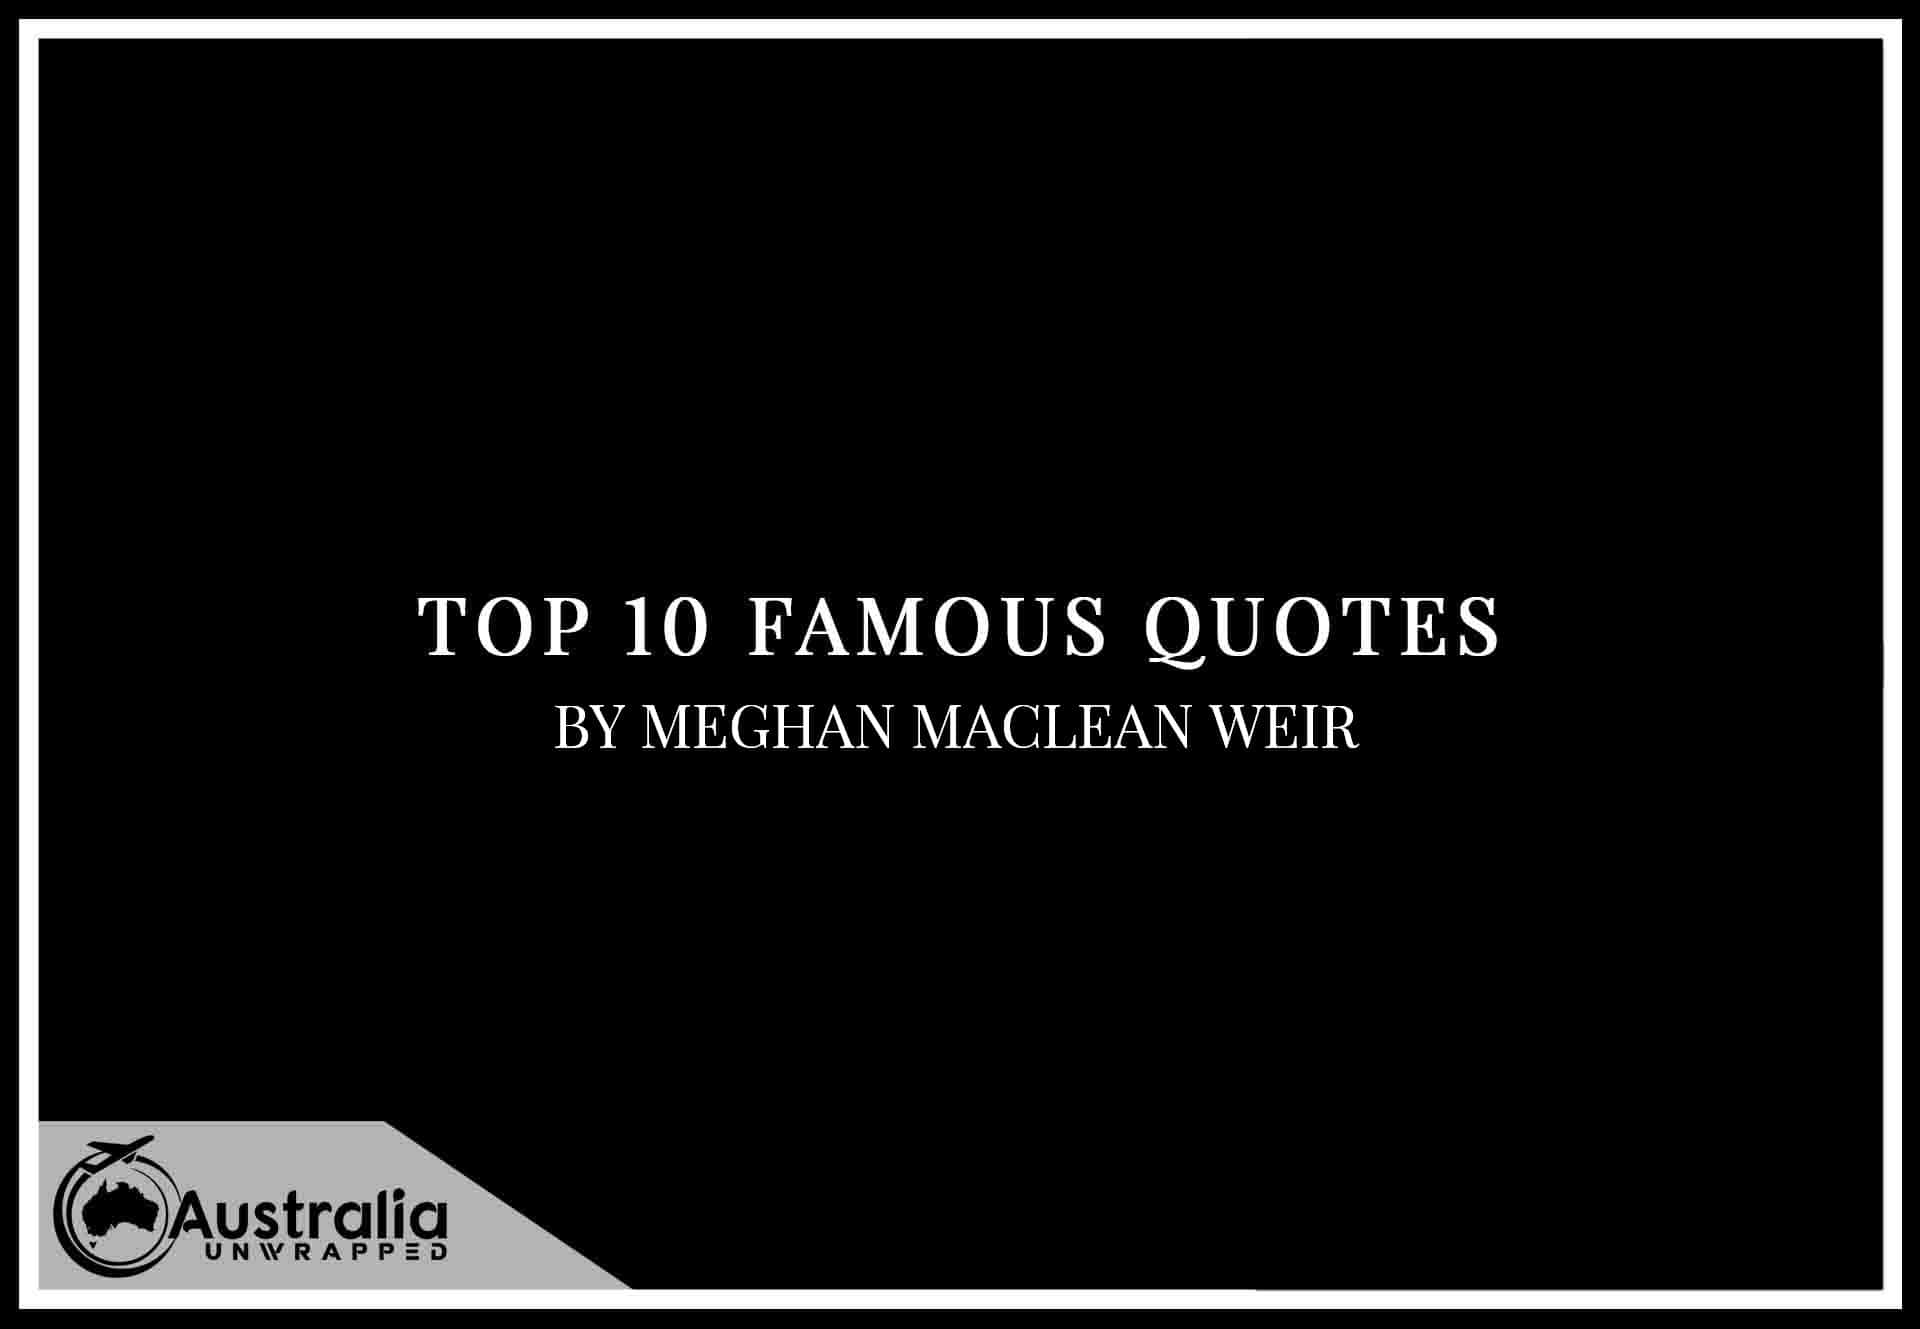 Top 10 Famous Quotes by Author Meghan MacLean Weir